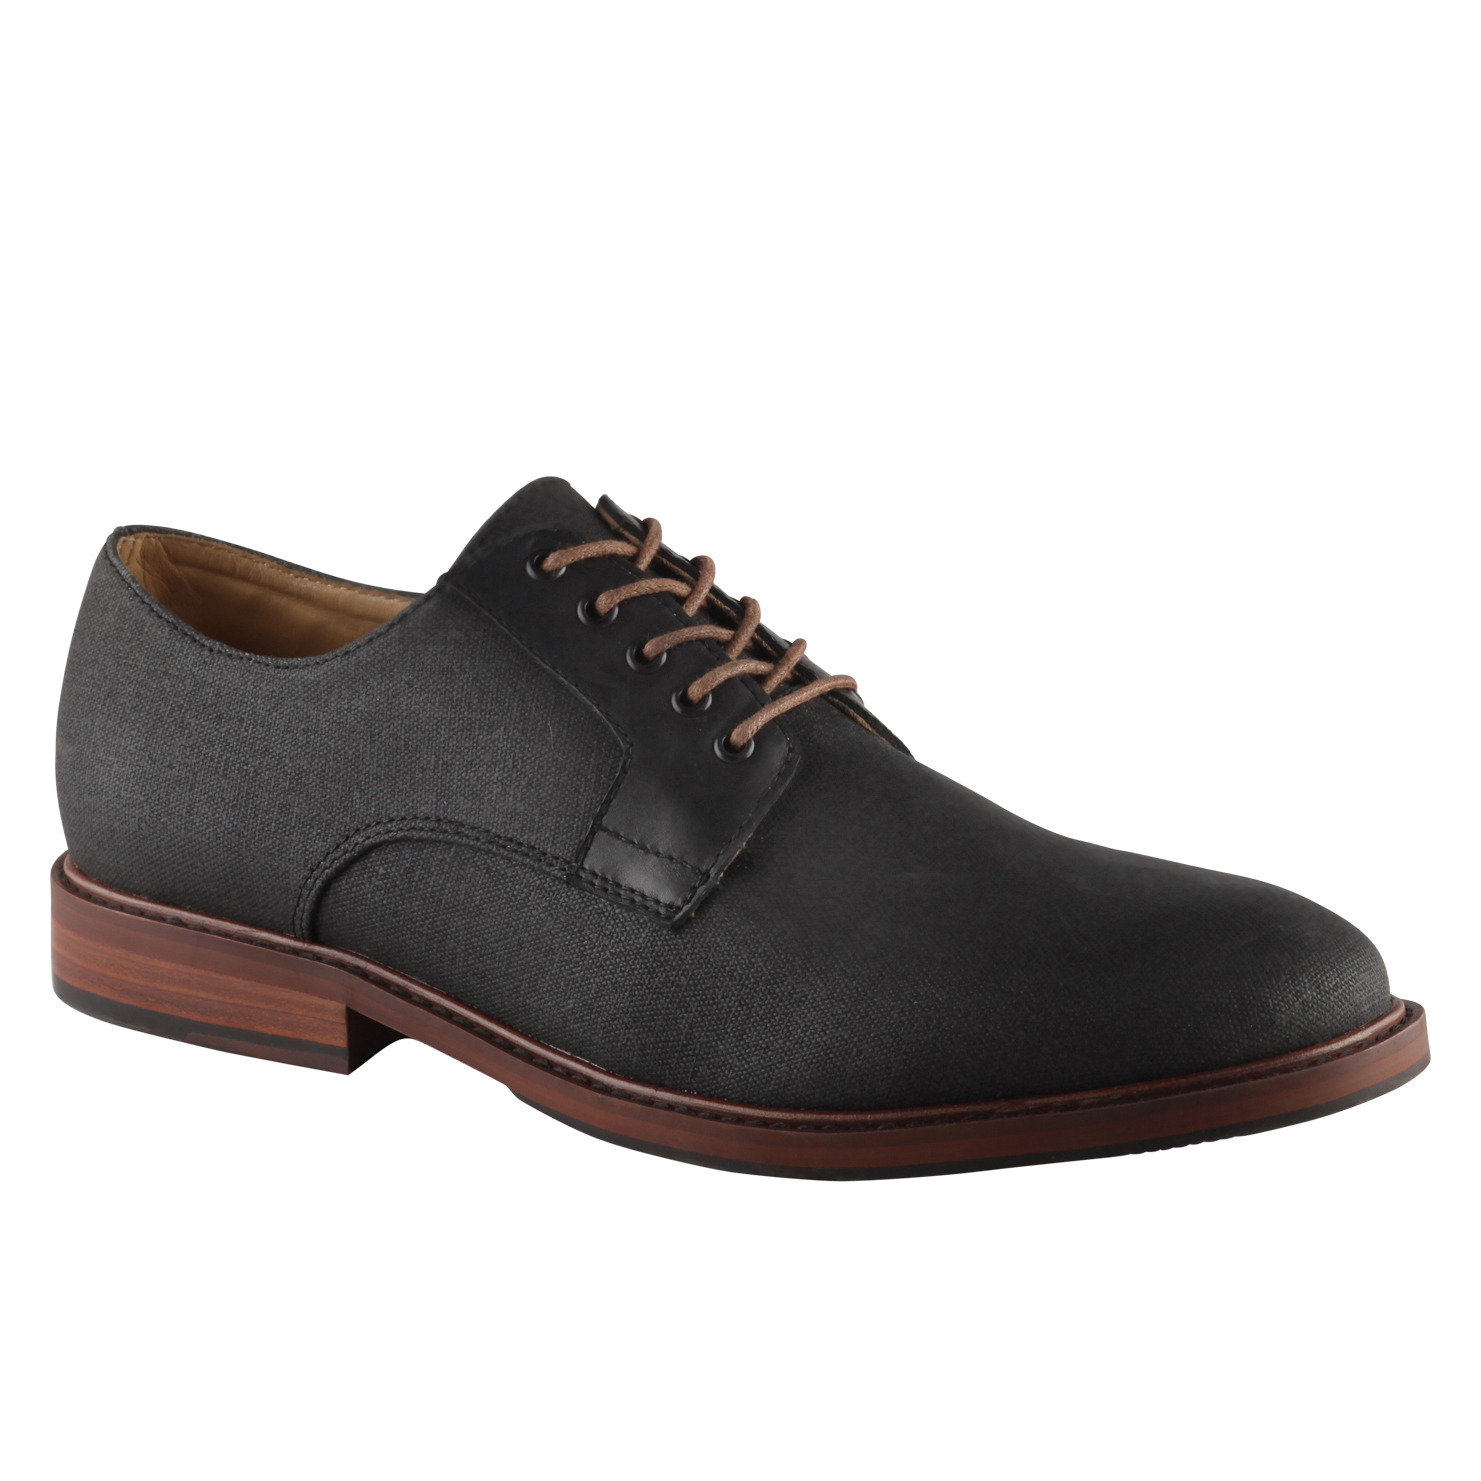 deore s casual lace ups shoes for from aldo for